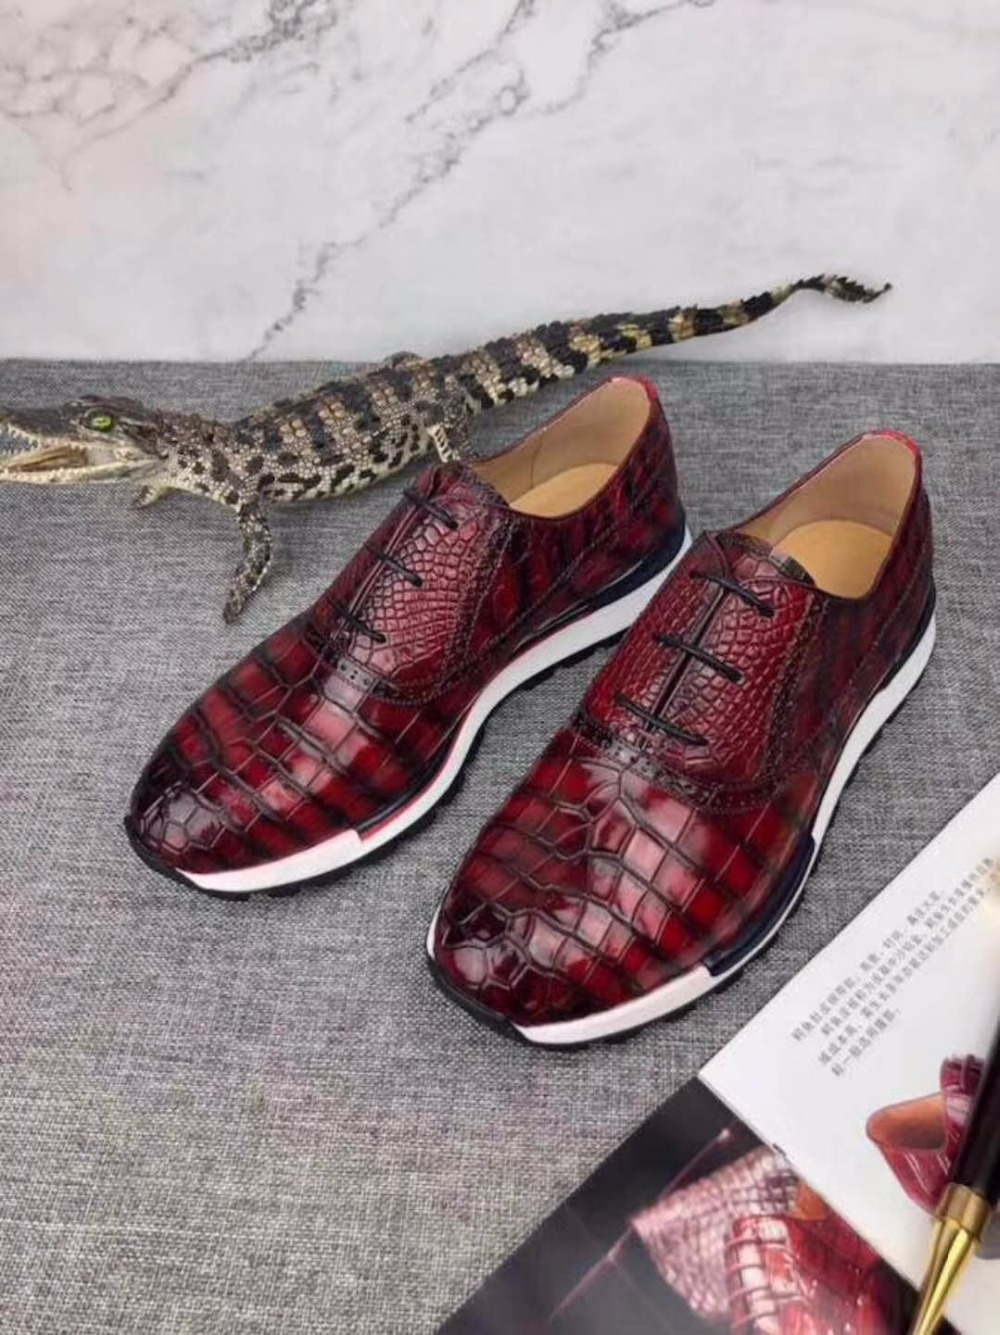 100% Genuine real crocodile belly glossy skin men shoe durable solid crocodile skin men business shoe with 2 colors mixed skin jd коллекция kt8031 серый черный 100